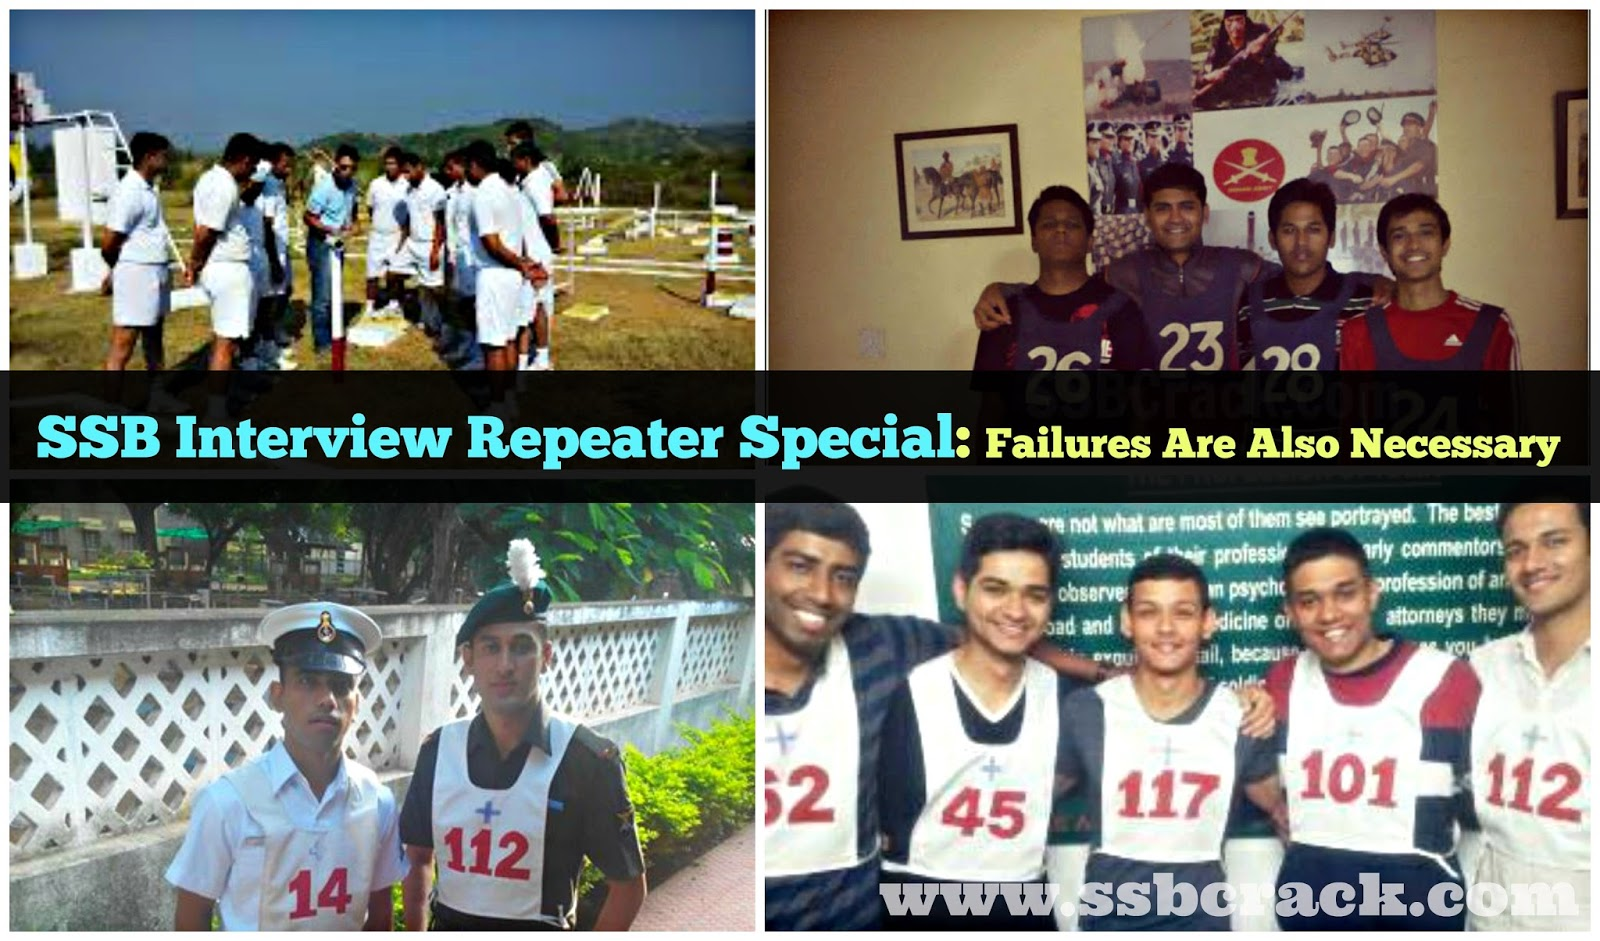 SSB Interview Repeater Special: Failures Are Also Necessary